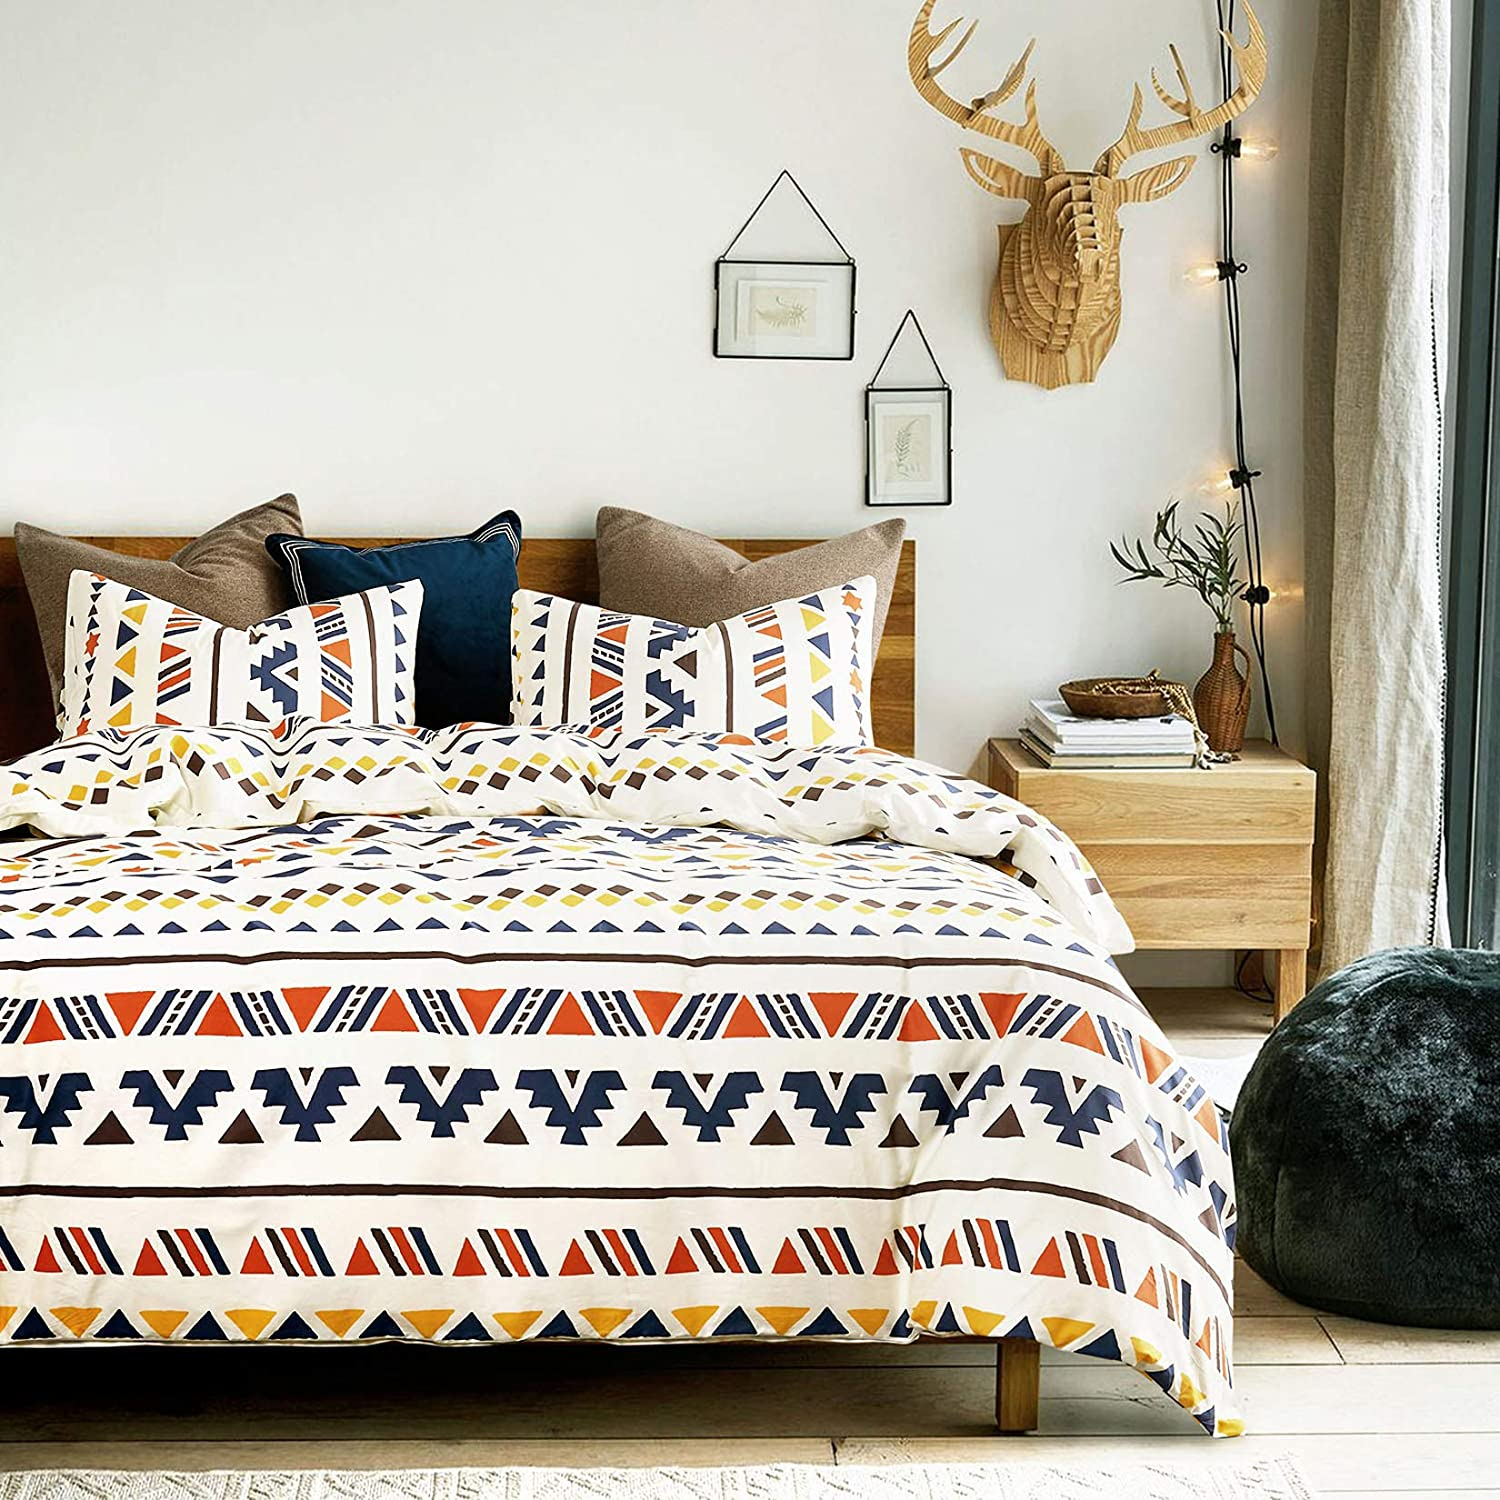 Wake In Cloud - Aztec Comforter Set, 100% Cotton Fabric with Soft Microfiber Fill Bedding, Colorful Geometric Modern Pattern Printed on Light Beige